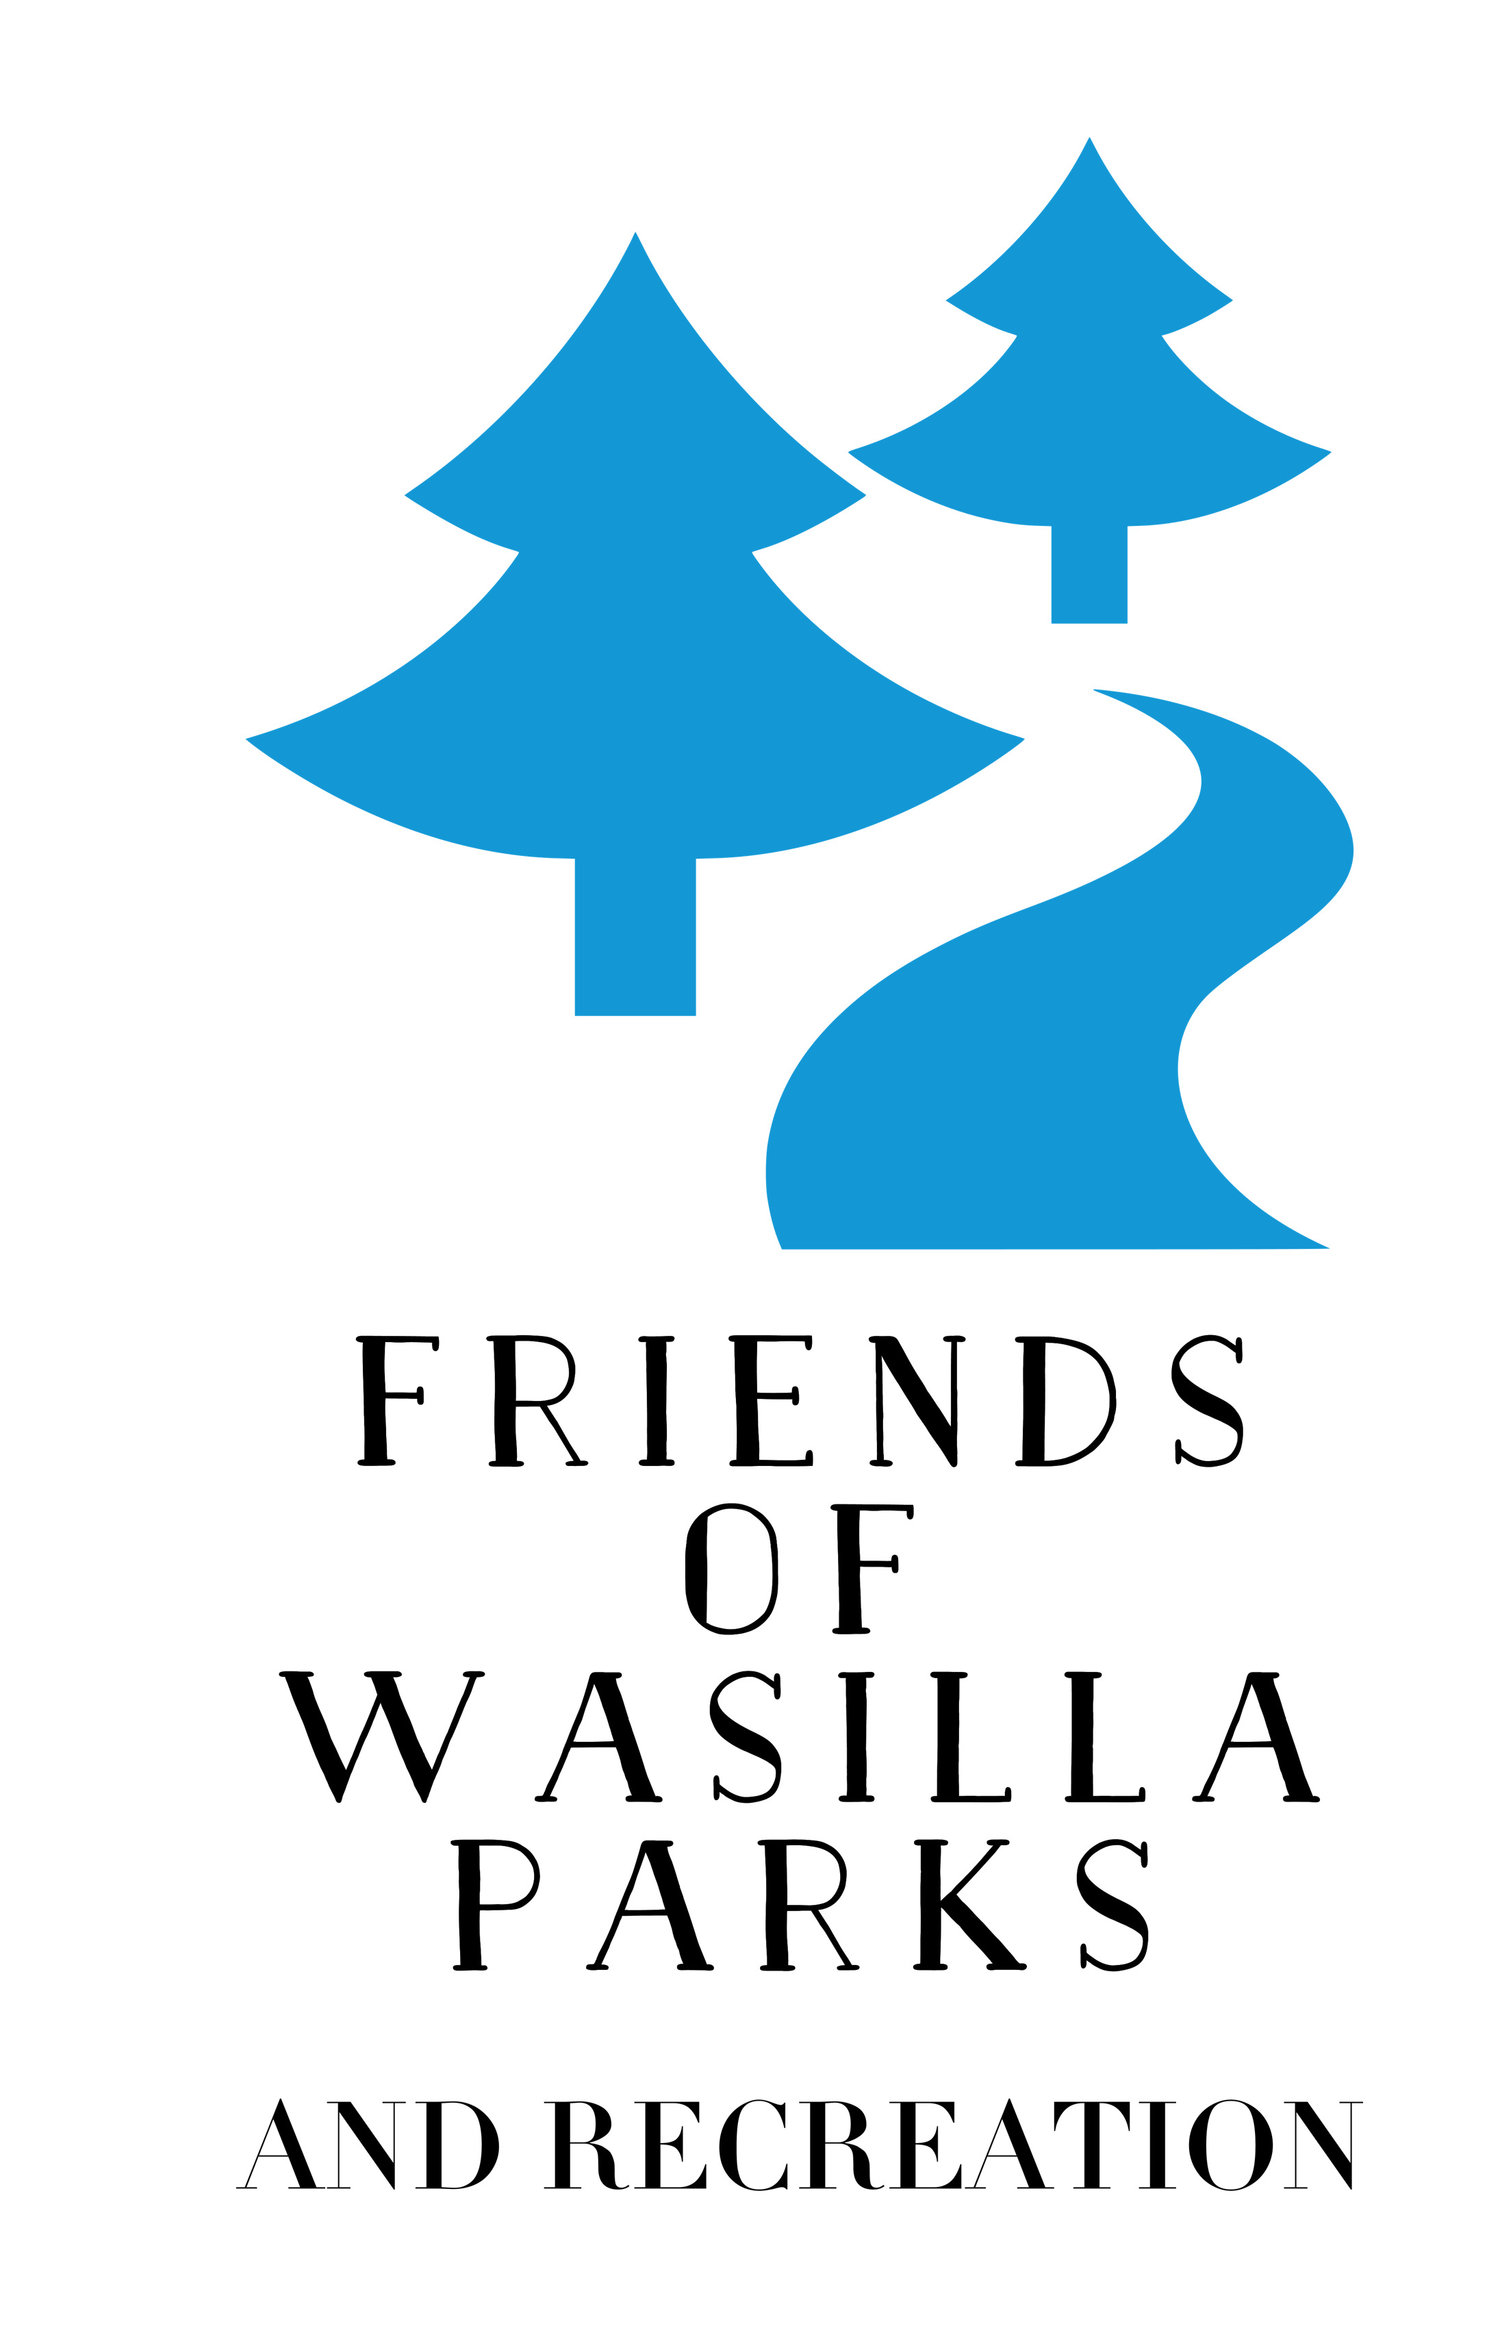 Friends of Wasilla Parks and Recreation